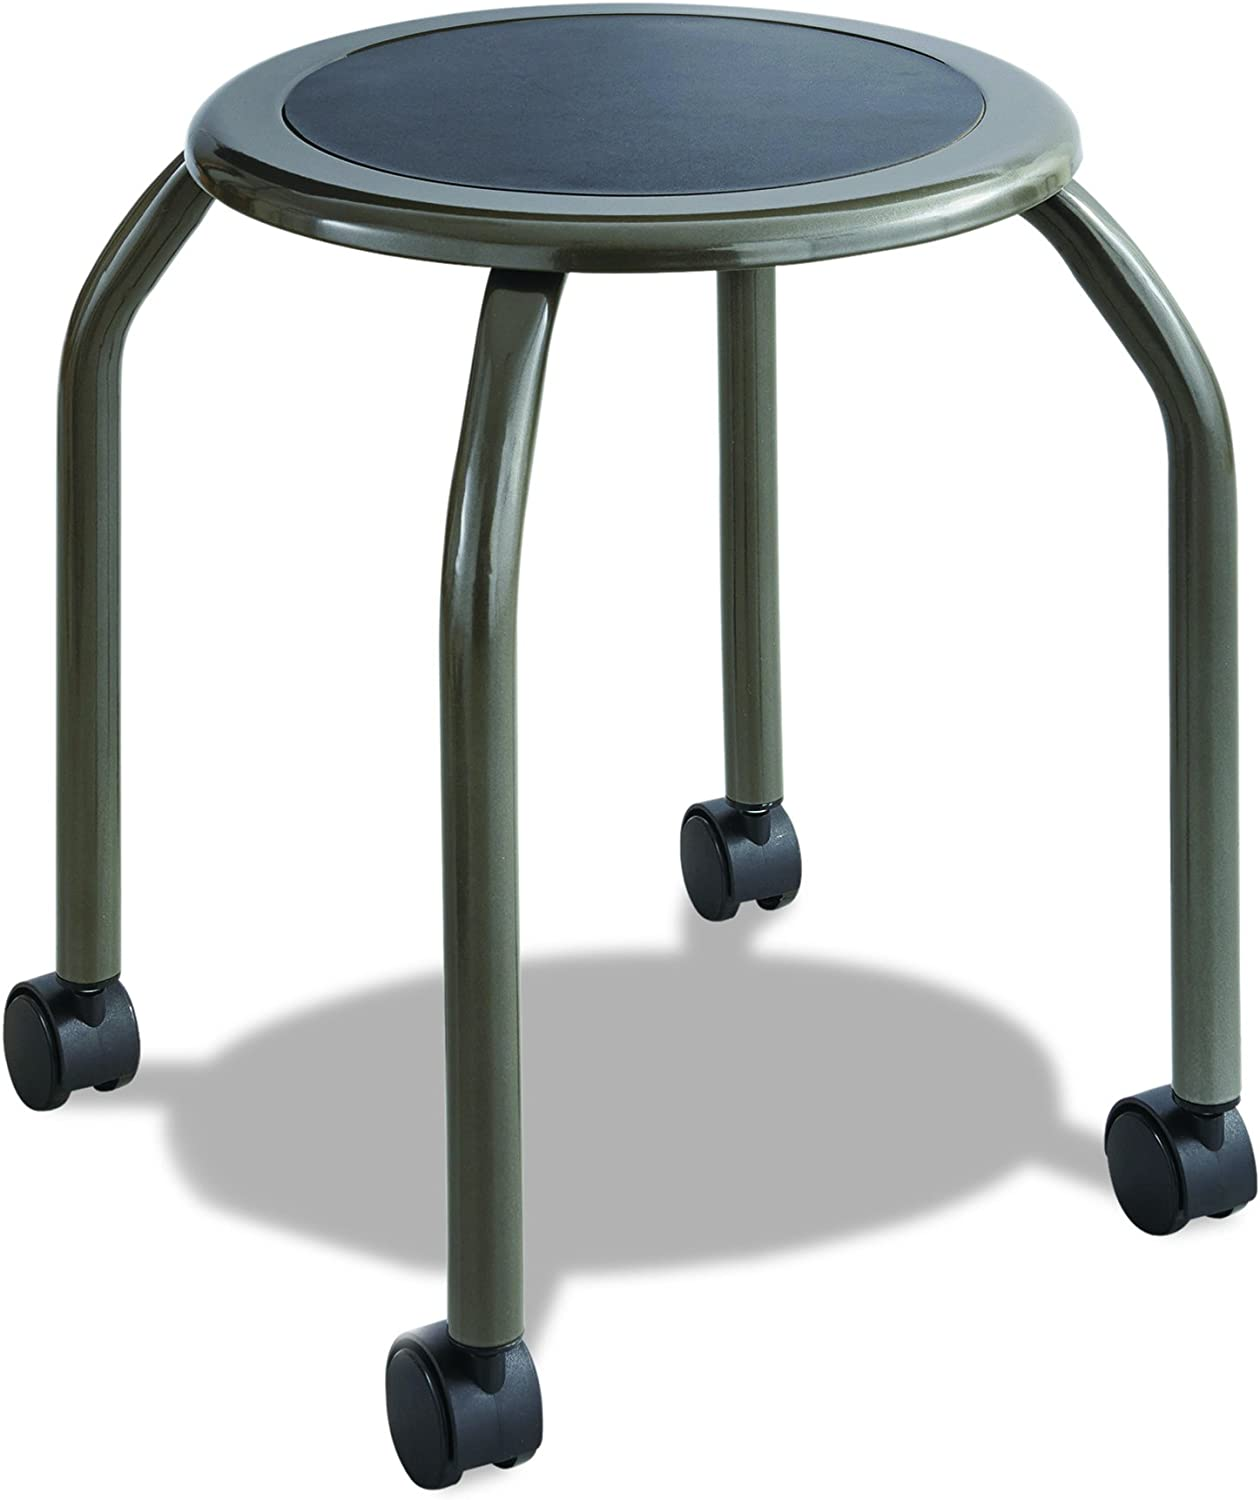 Safco Products 6667 Diesel Stool Trolley, Pewter